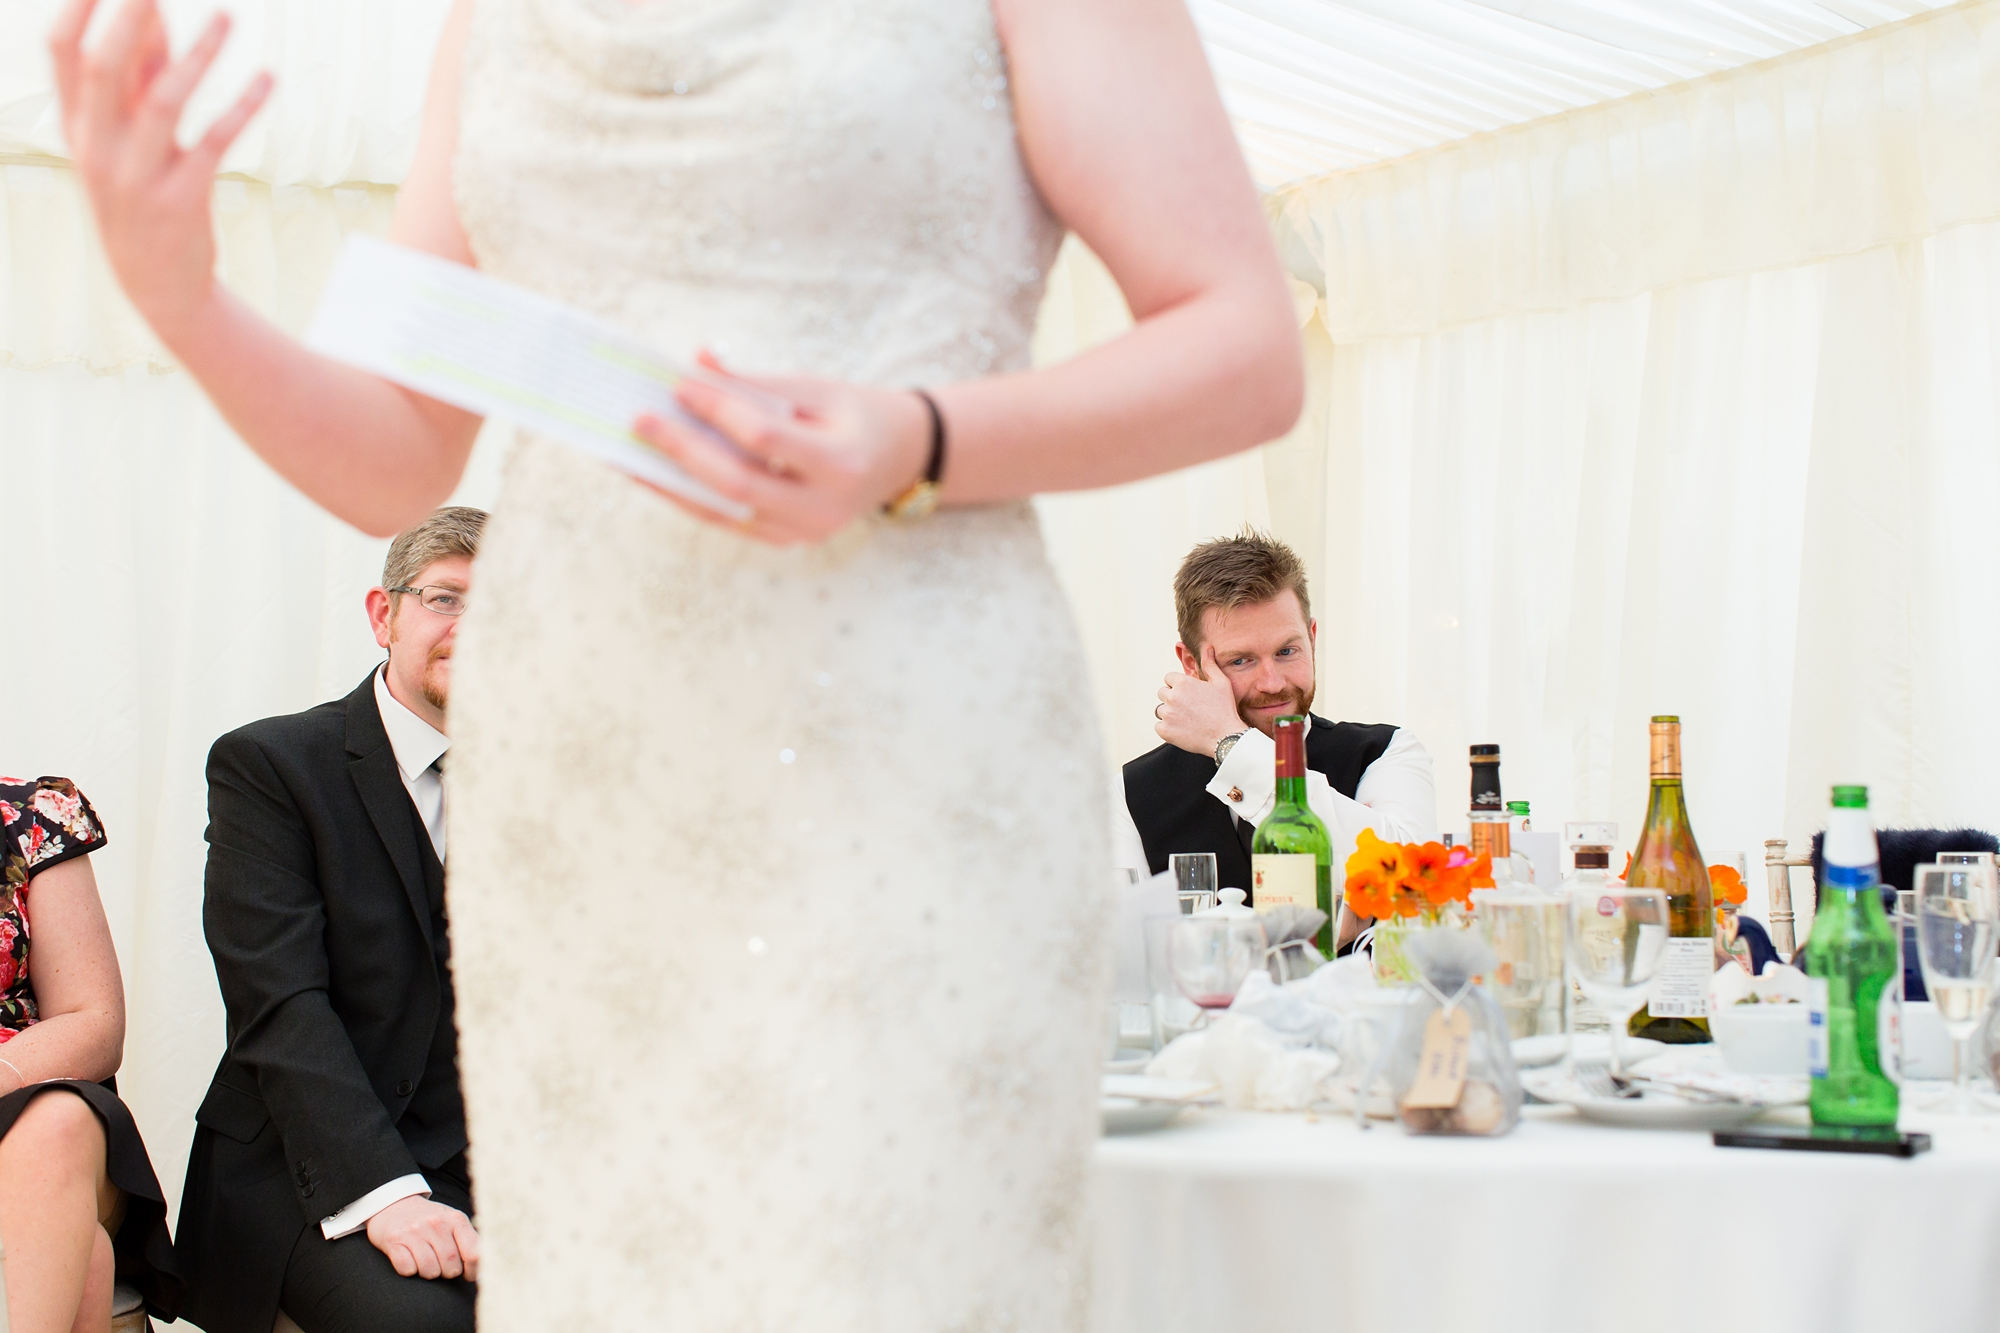 Groom cries whilst standing behind beide giving speech